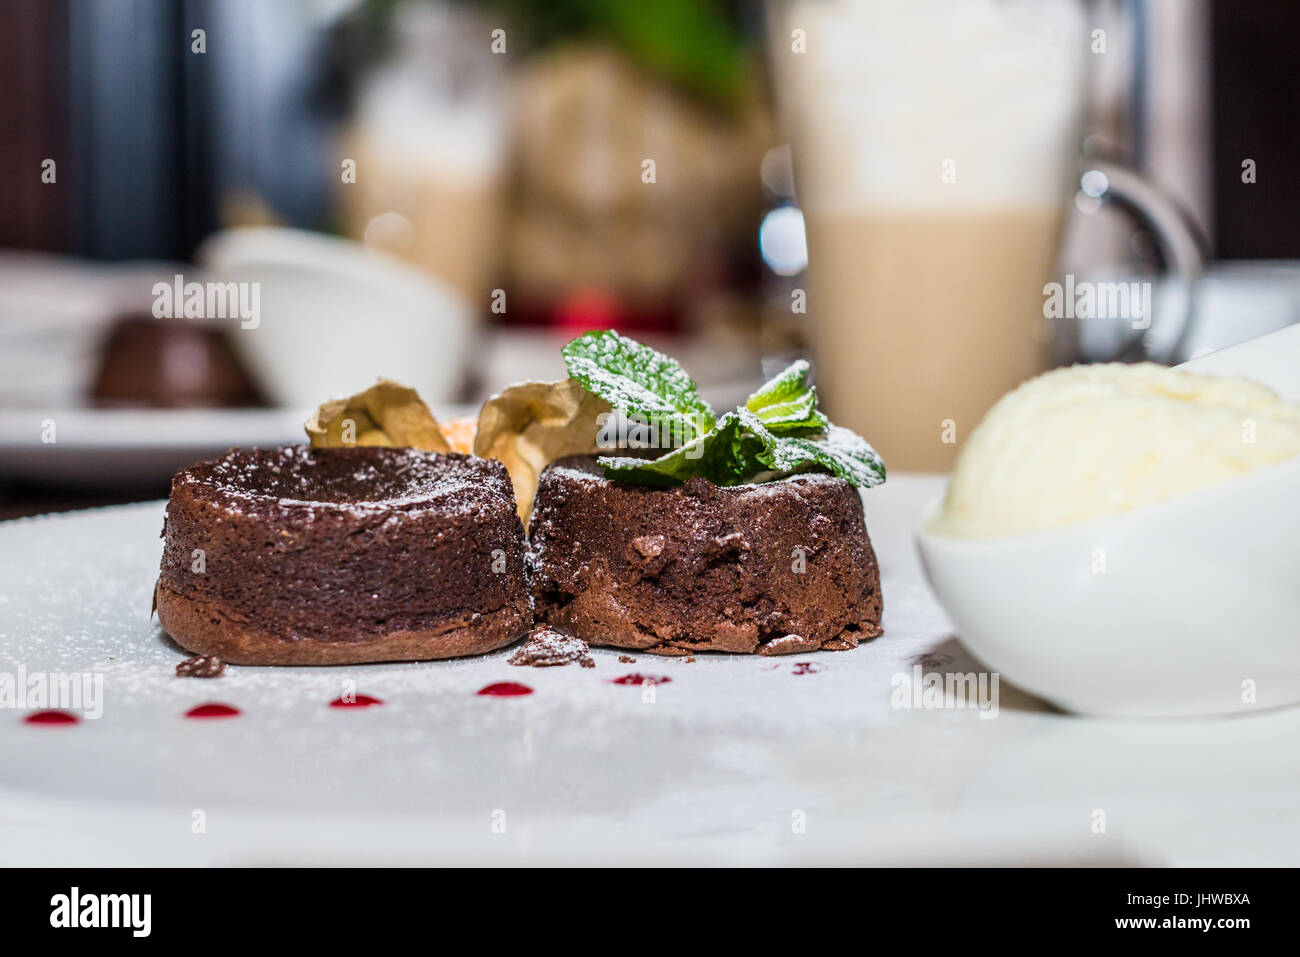 Warm dessert chocolate cake - Stock Image